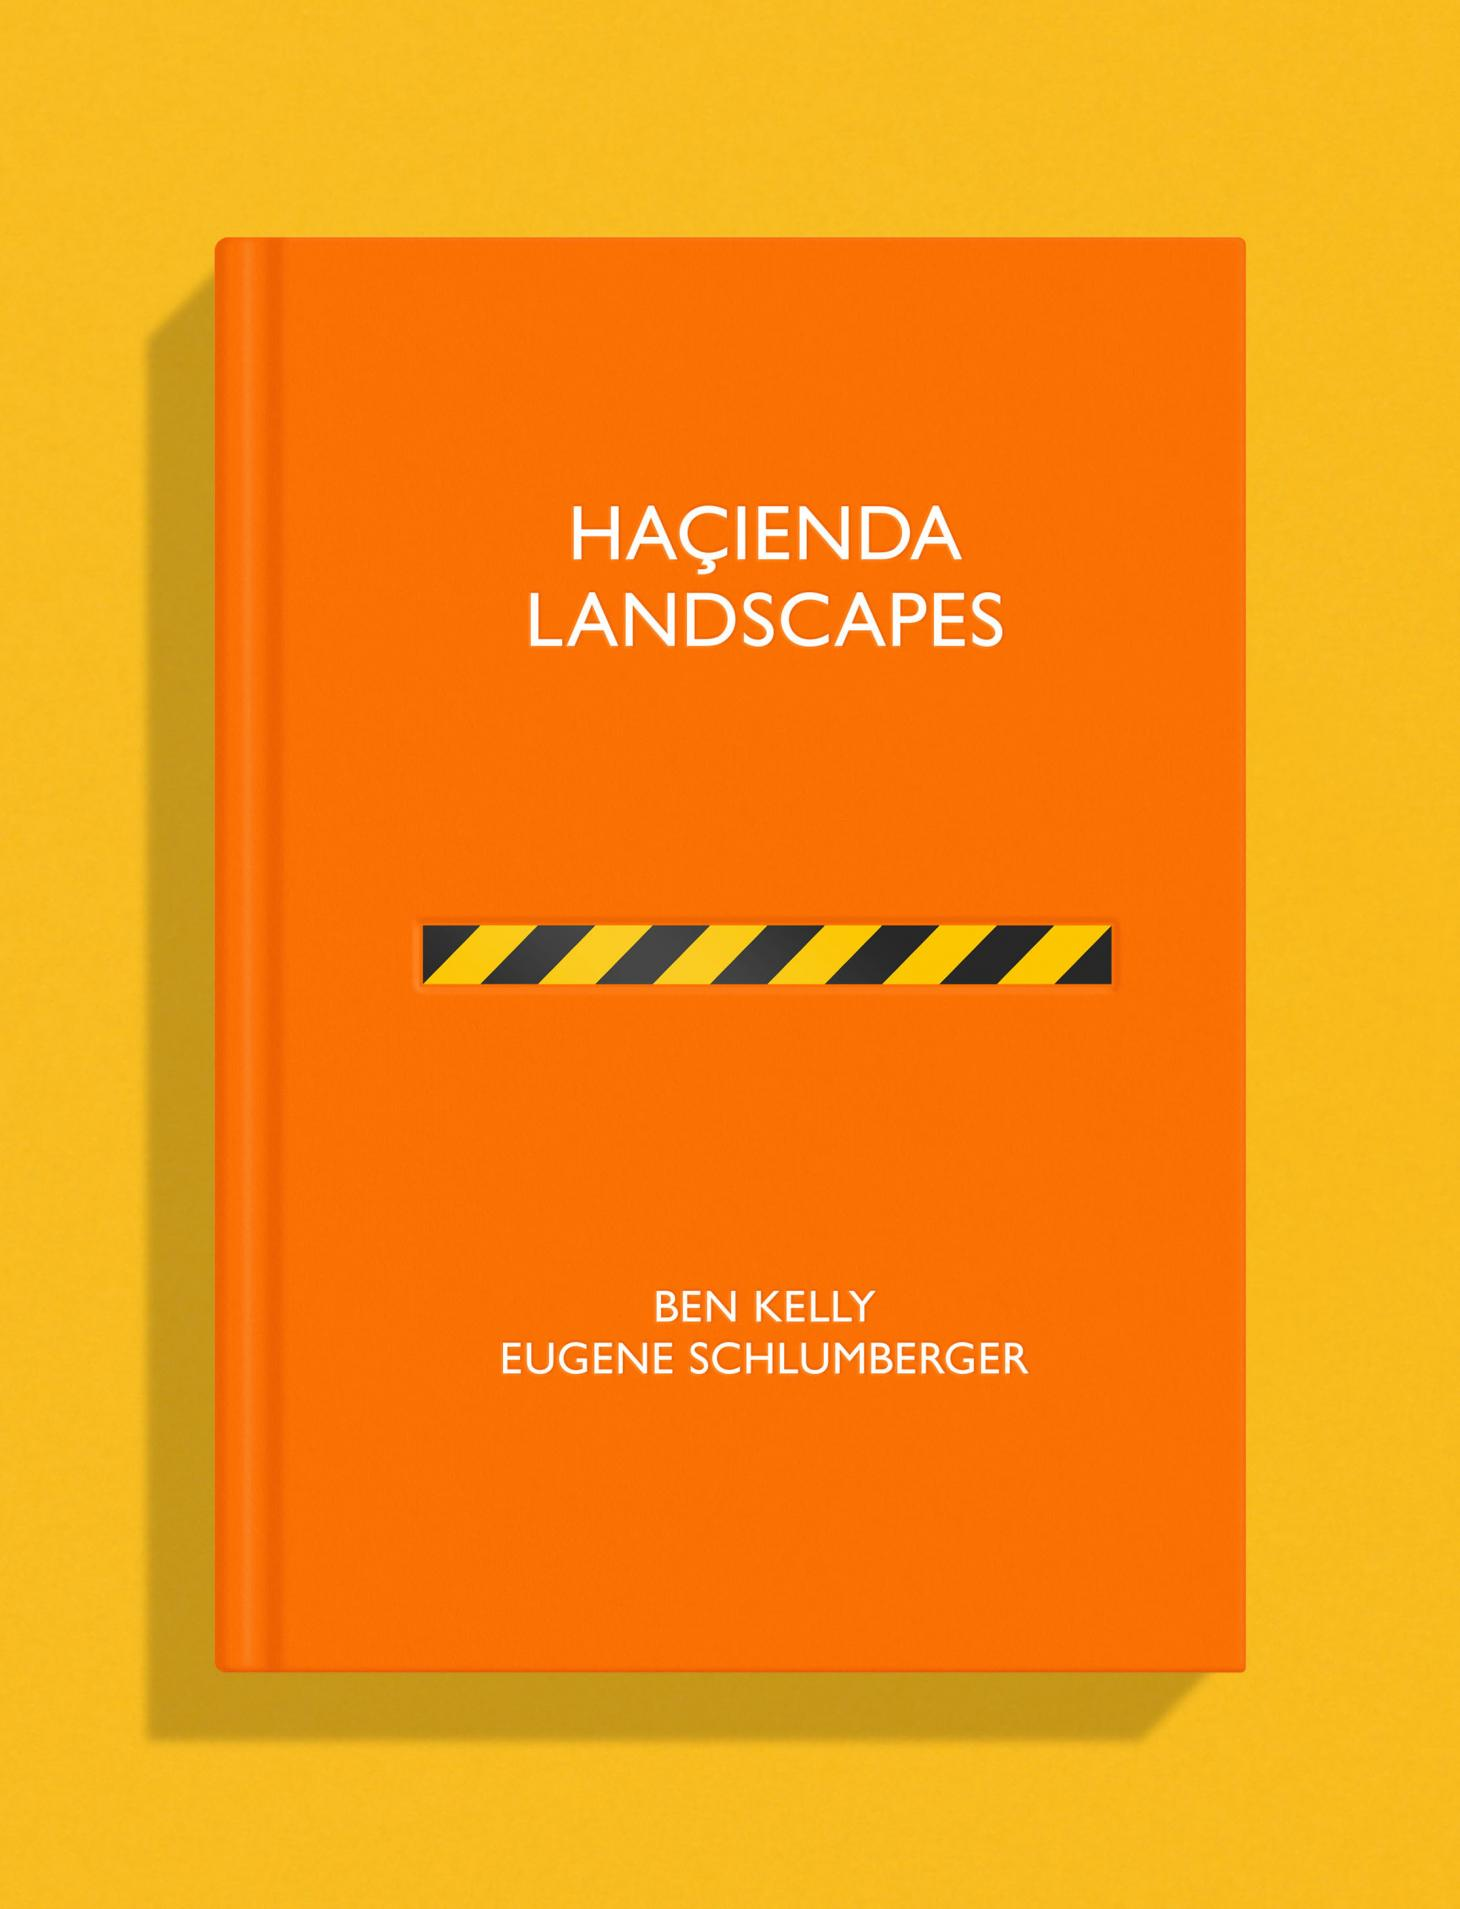 Book cover of 'Hacienda Landscapes' designed by Ben Kelly, on a vibrant yellow background